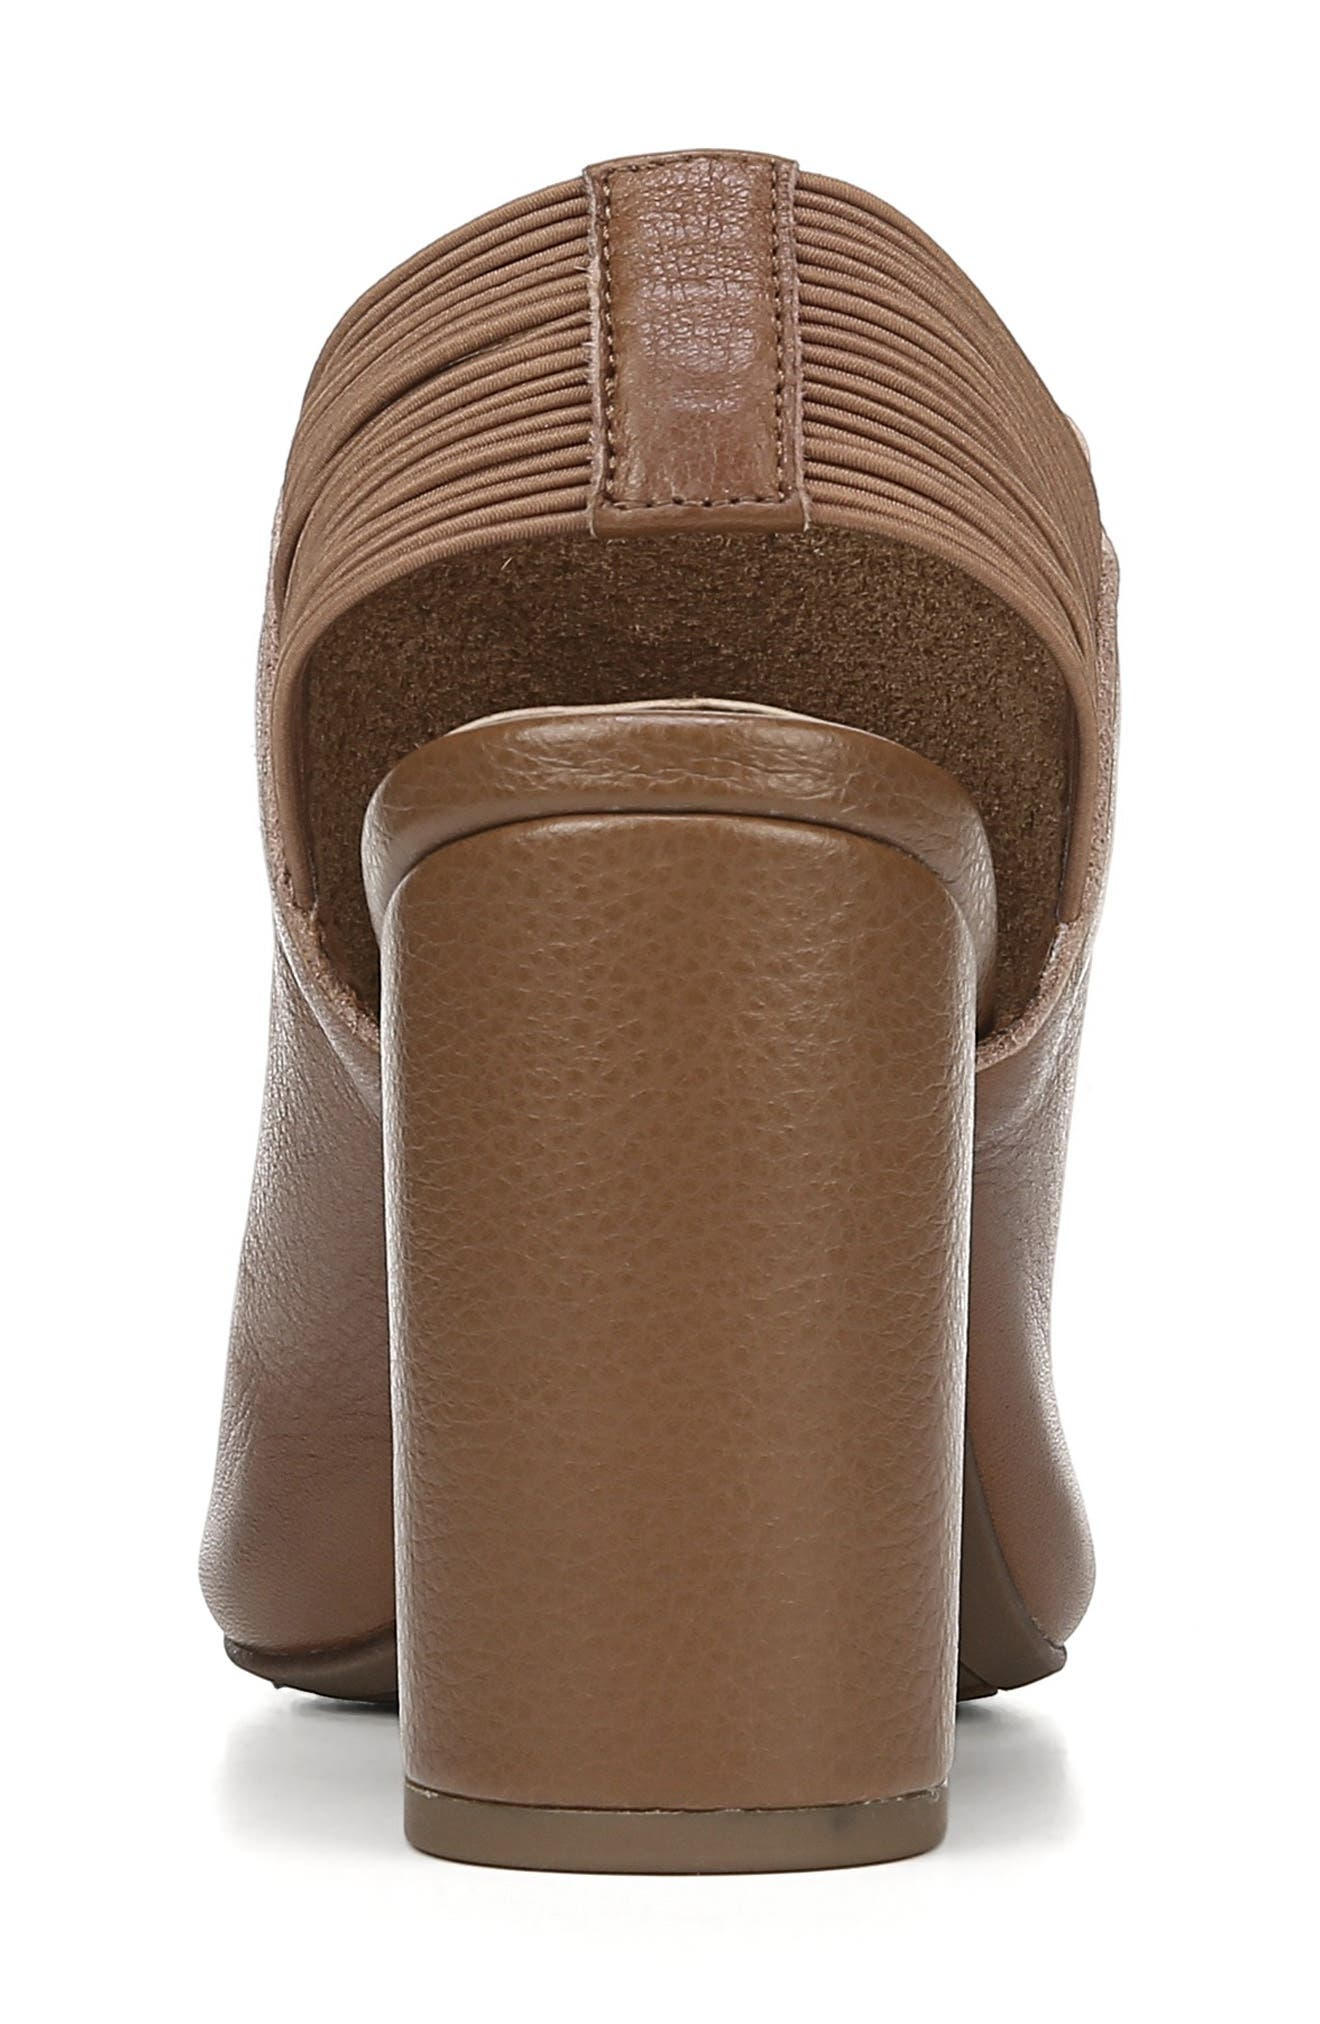 FRANCO SARTO, Opaline Corded Slingback Sandal, Alternate thumbnail 7, color, LIGHT BROWN LEATHER